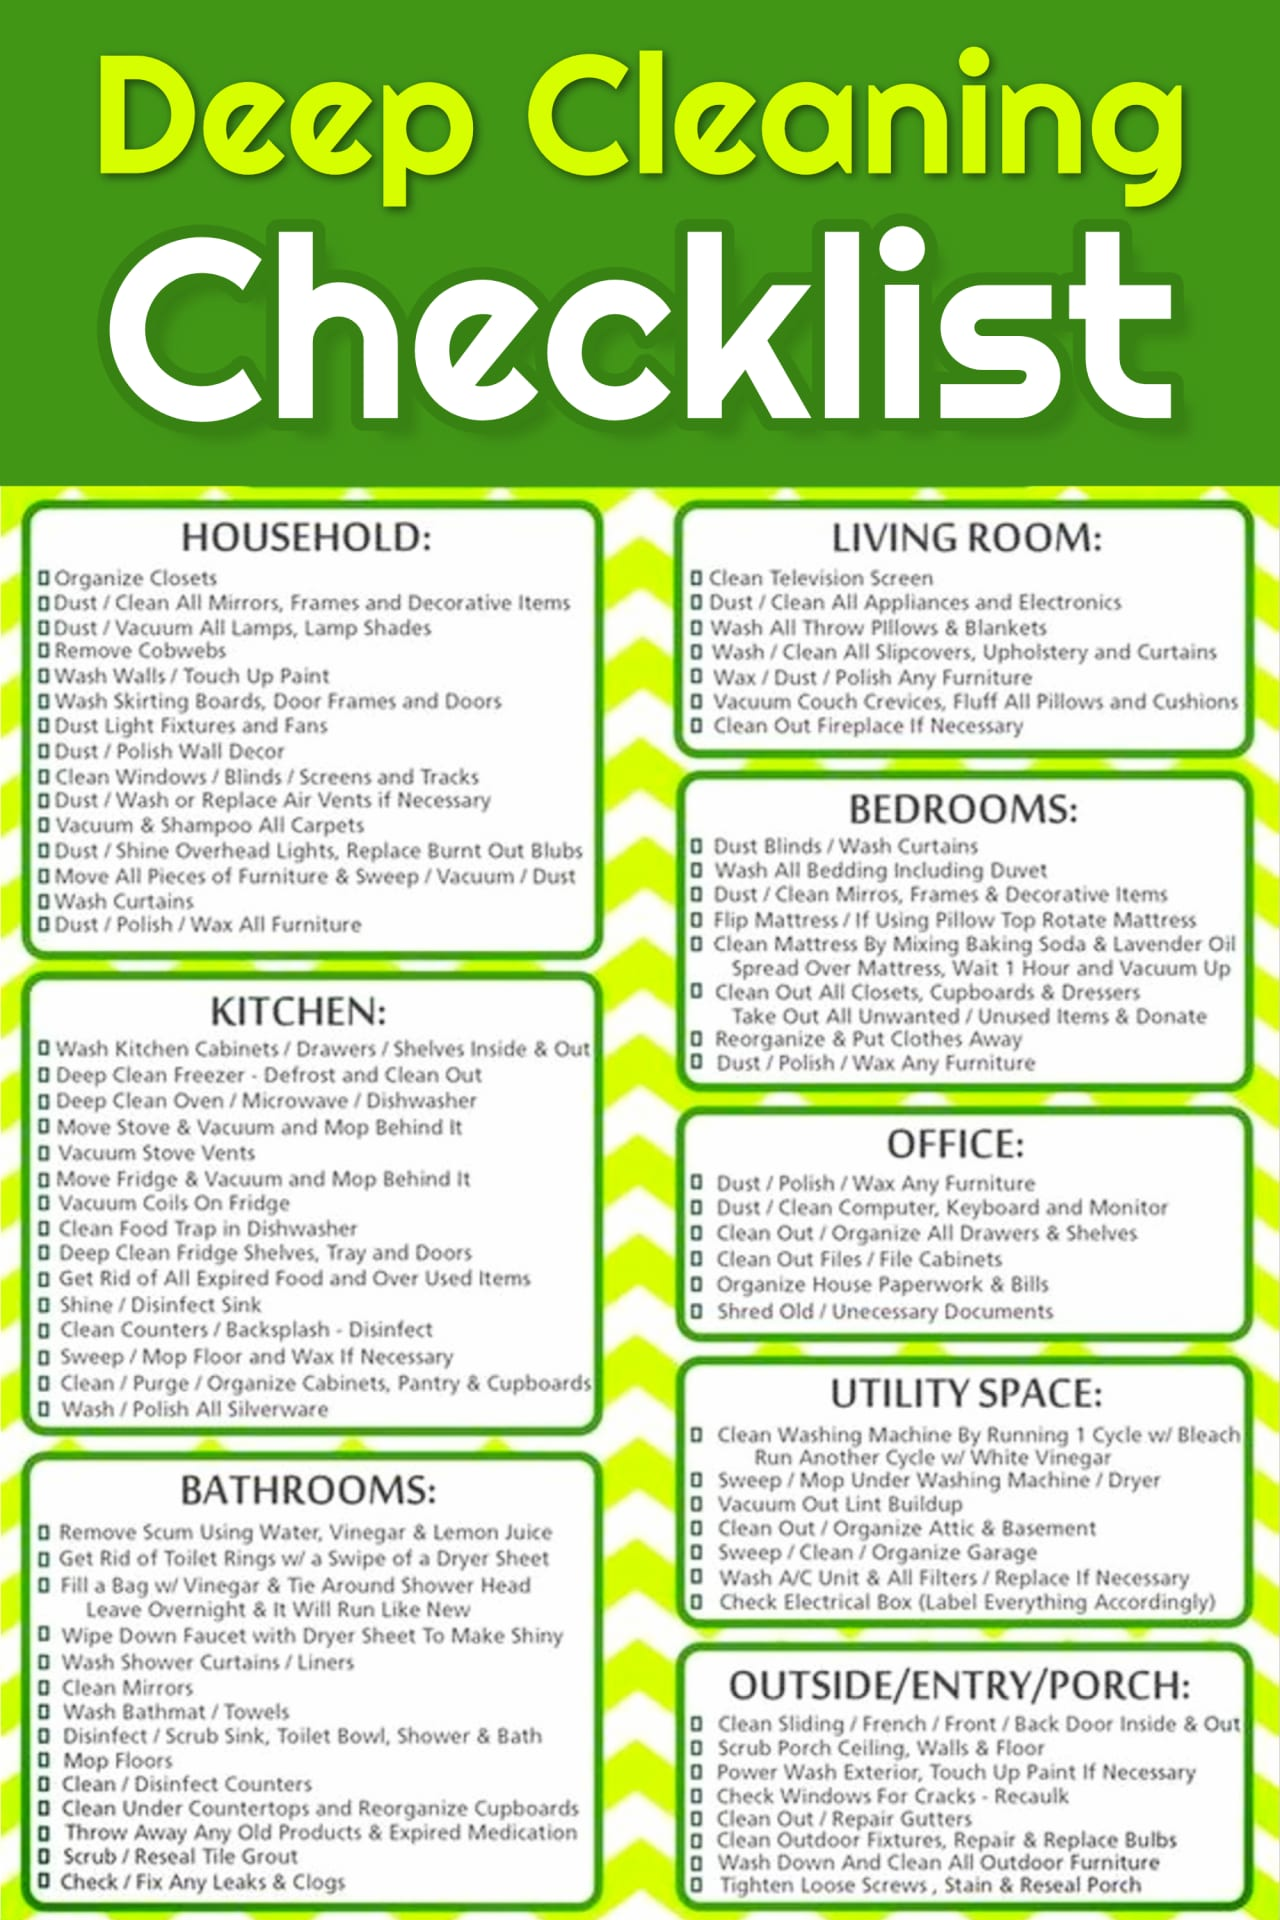 Deep Cleaning Checklist (free!) Deep Clean Your House or apartment! Free deep clean your house Checklist Printable - Free deep cleaning checklist - How to deep clean your house checklist with deep cleaning tasks for deep cleaning house like deep cleaning services Professionals - Deep cleaning list house, deep cleaning apartment, What IS deep cleaning and Deep Cleaning vs Regular Cleaning -  whole house deep cleaning, deep cleaning checklist pdf, initial cleaning checklist